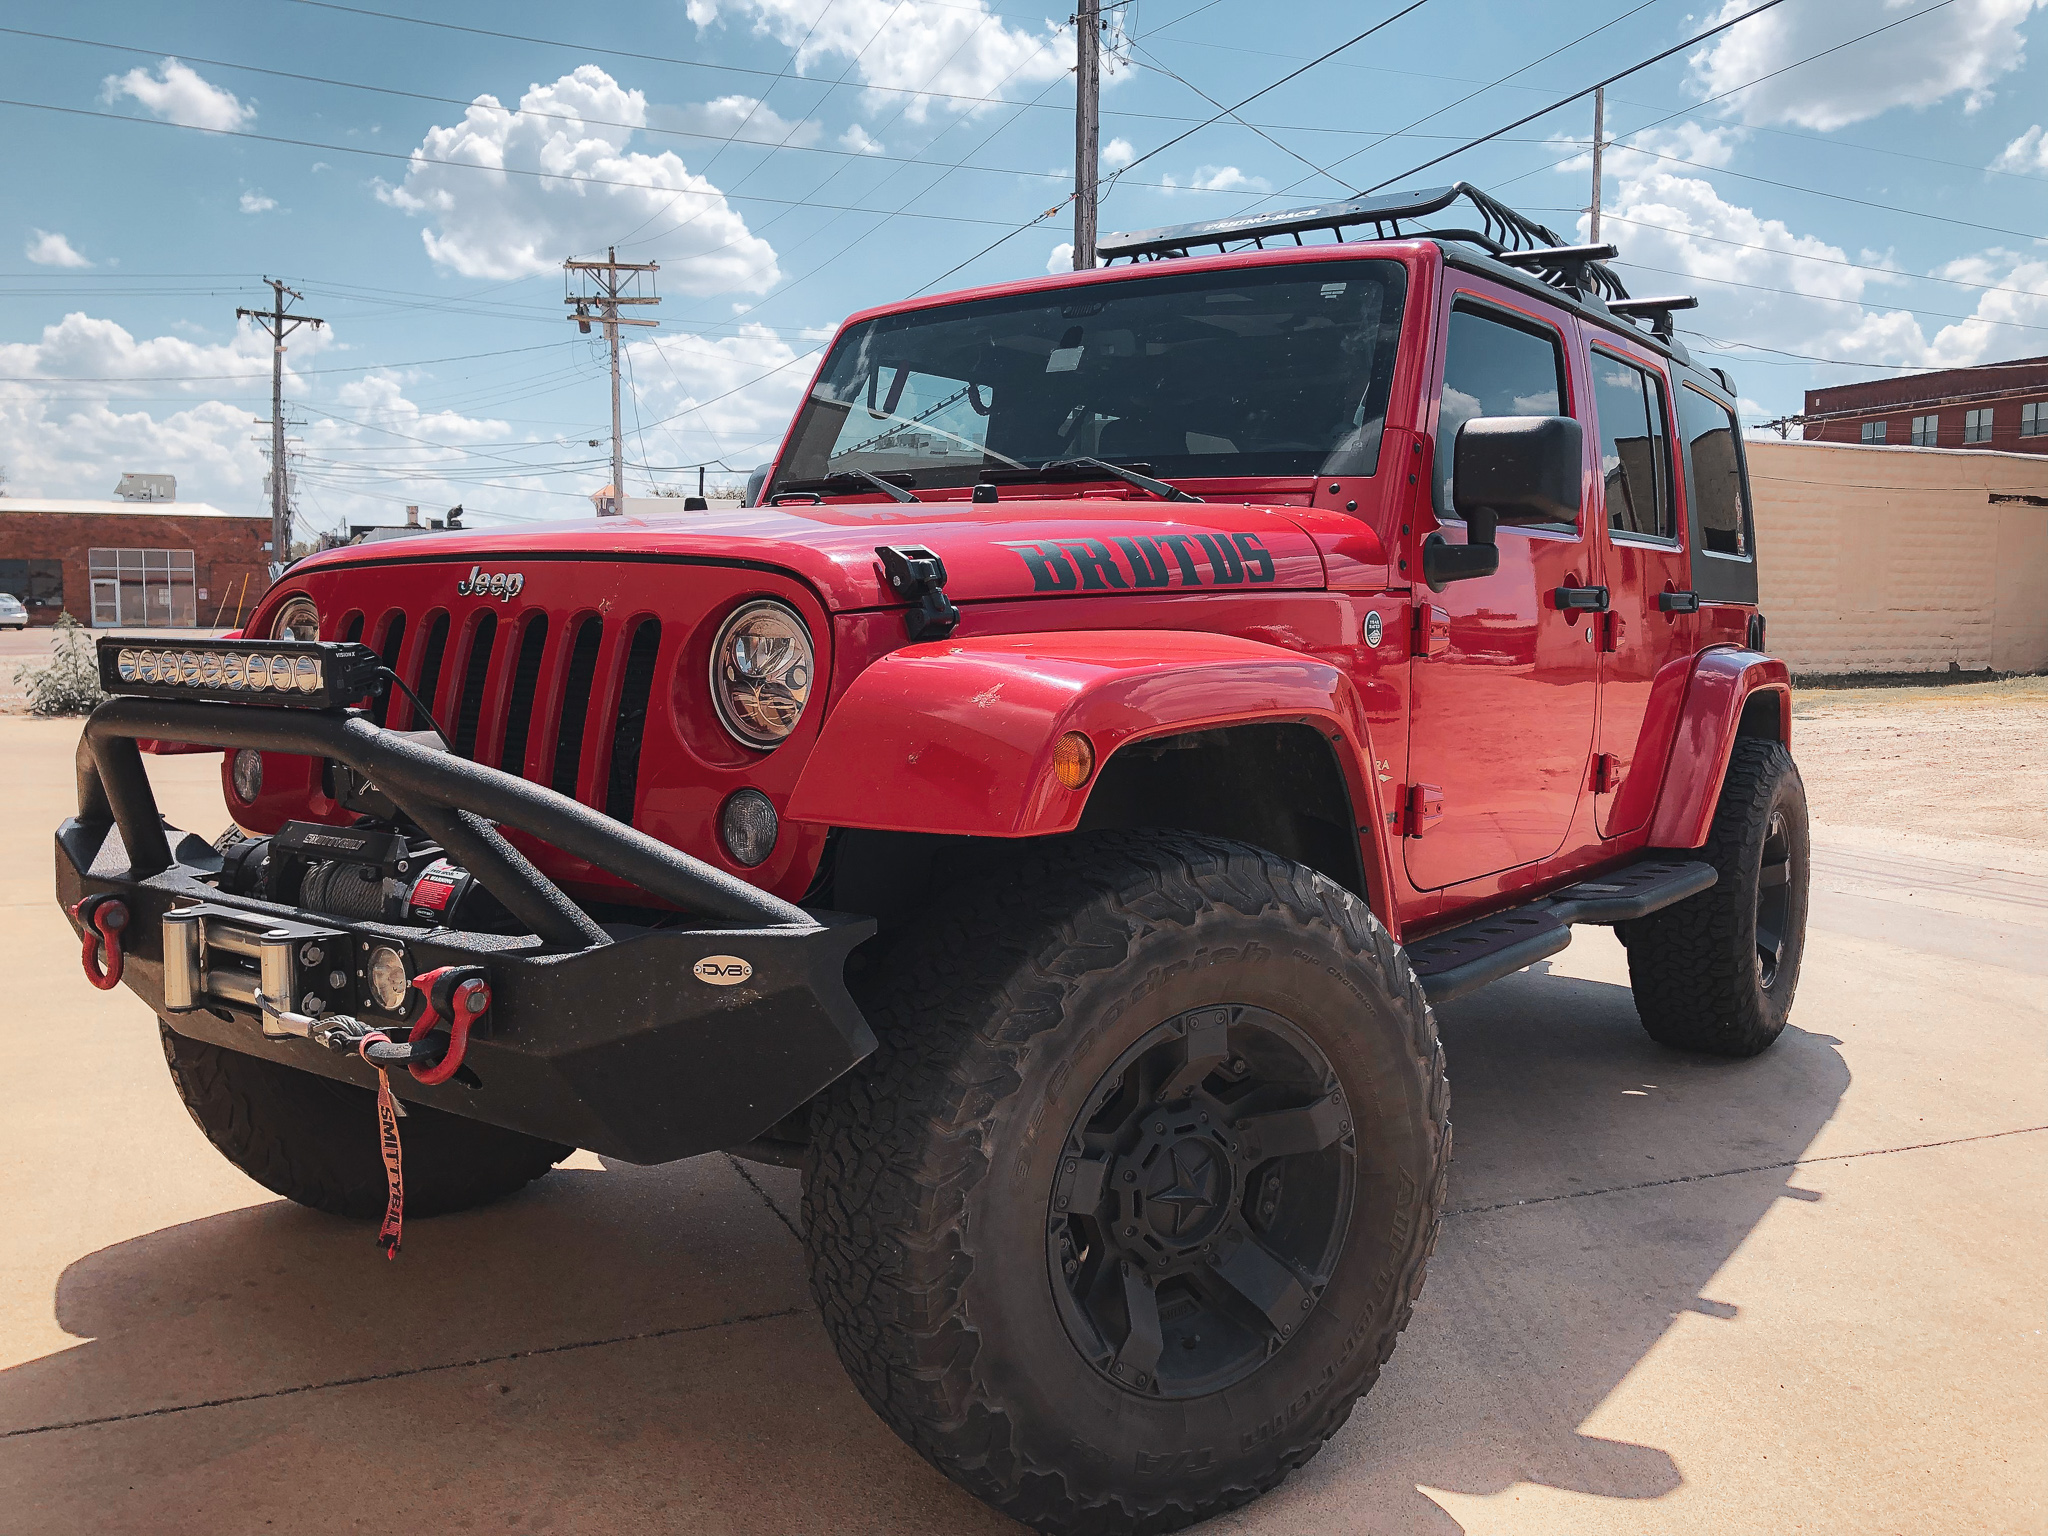 Red jeep parked at an angle on concrete pavement outside